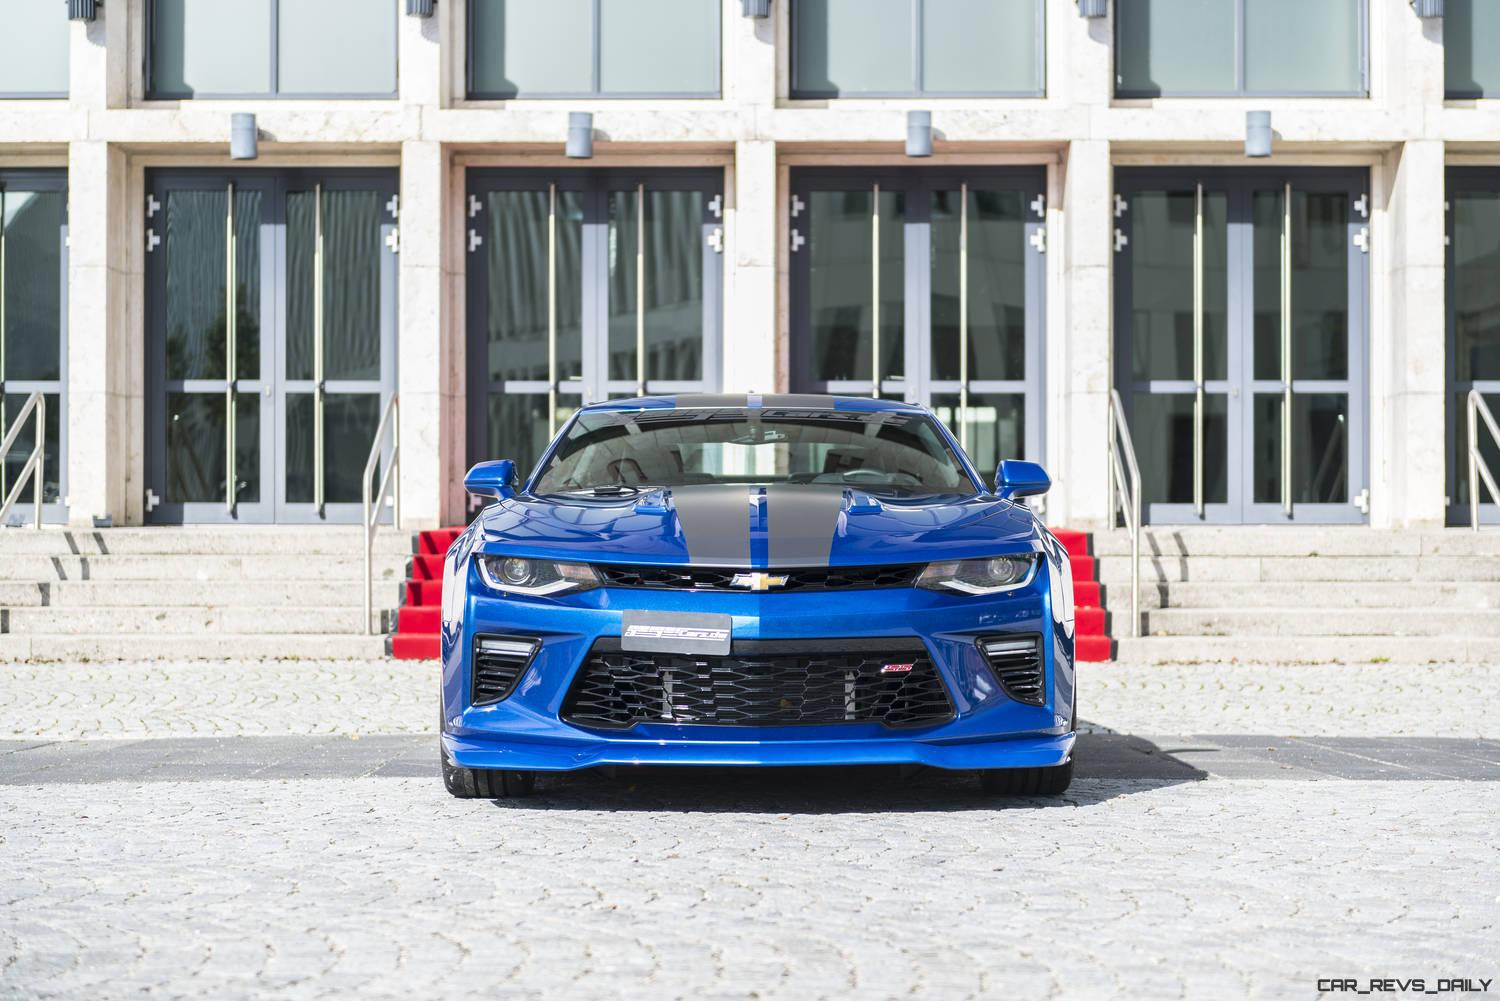 csm_geigercars-camaro-50th-anni-stripes_12_e77a8caac5